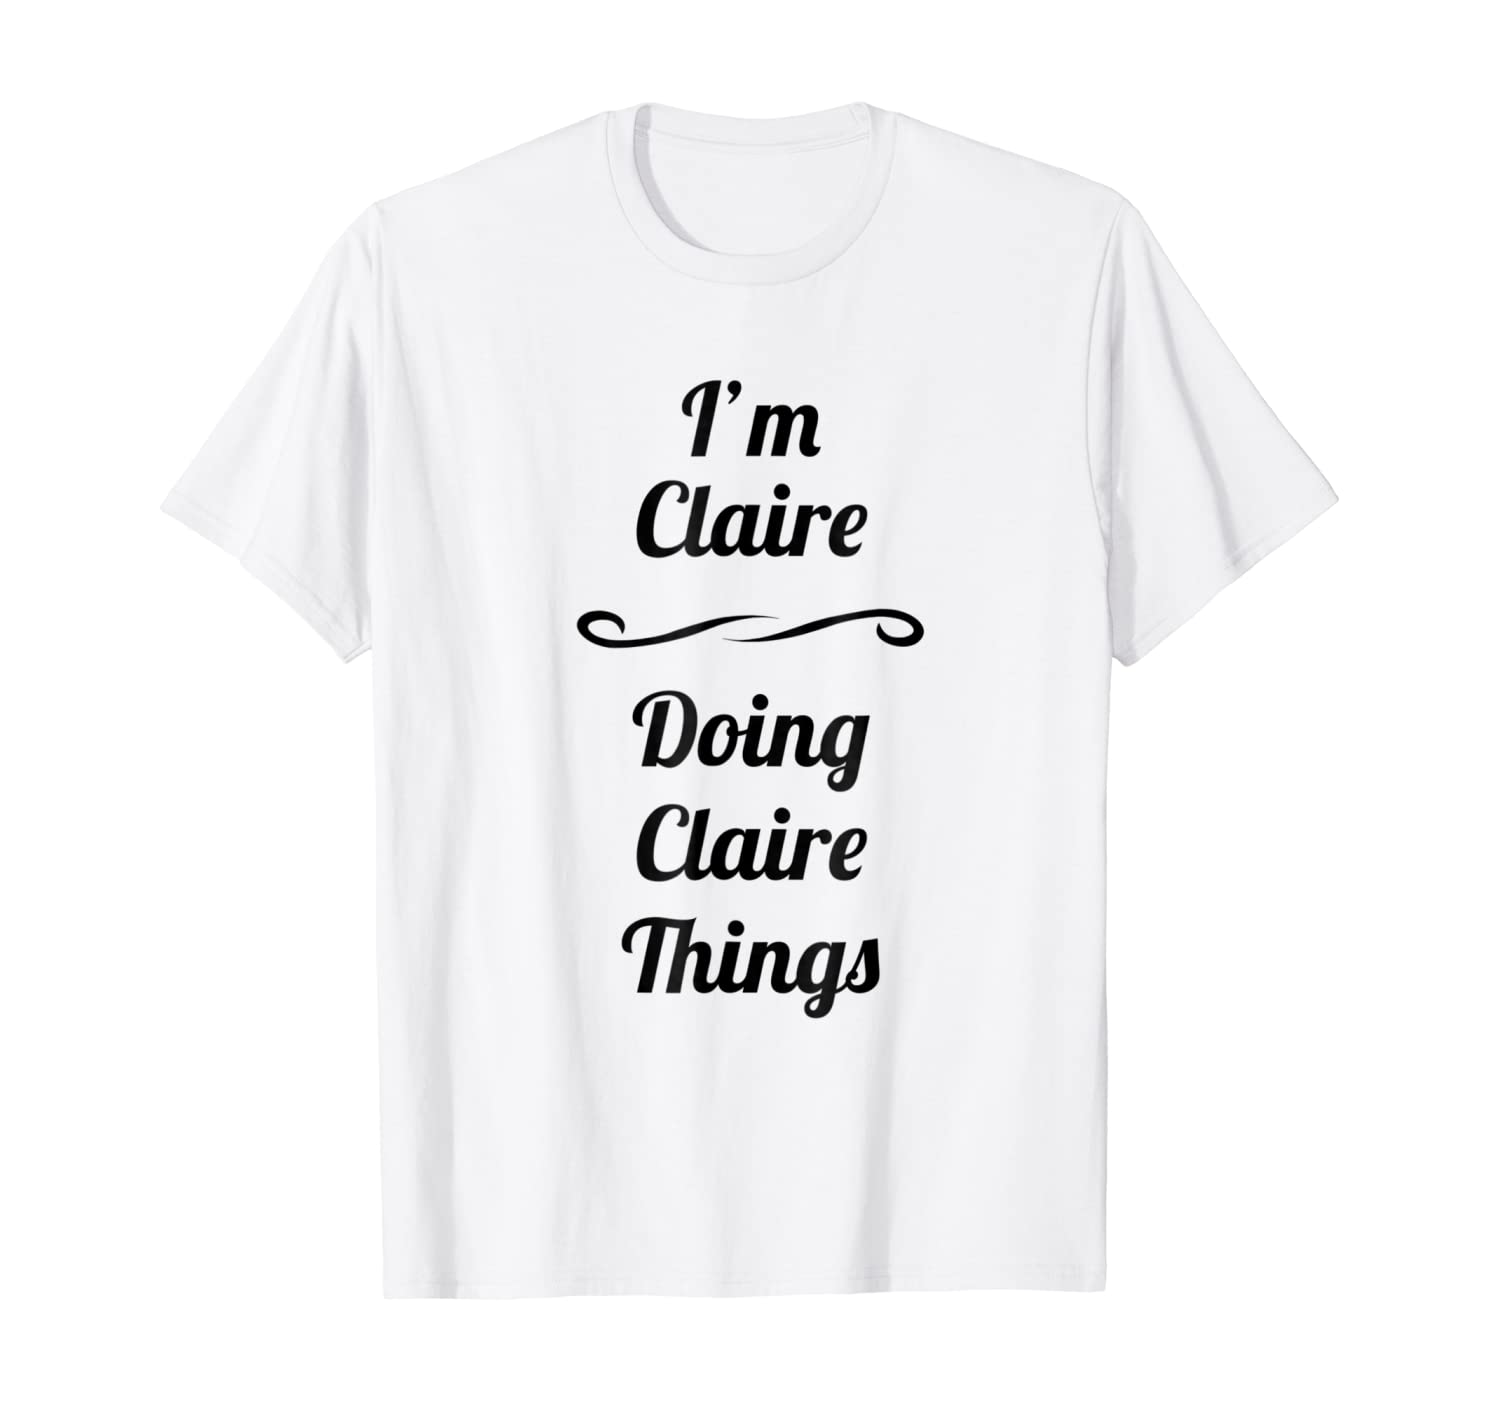 I'm Claire - Doing Claire Things | Cute T-Shirt Name Gift